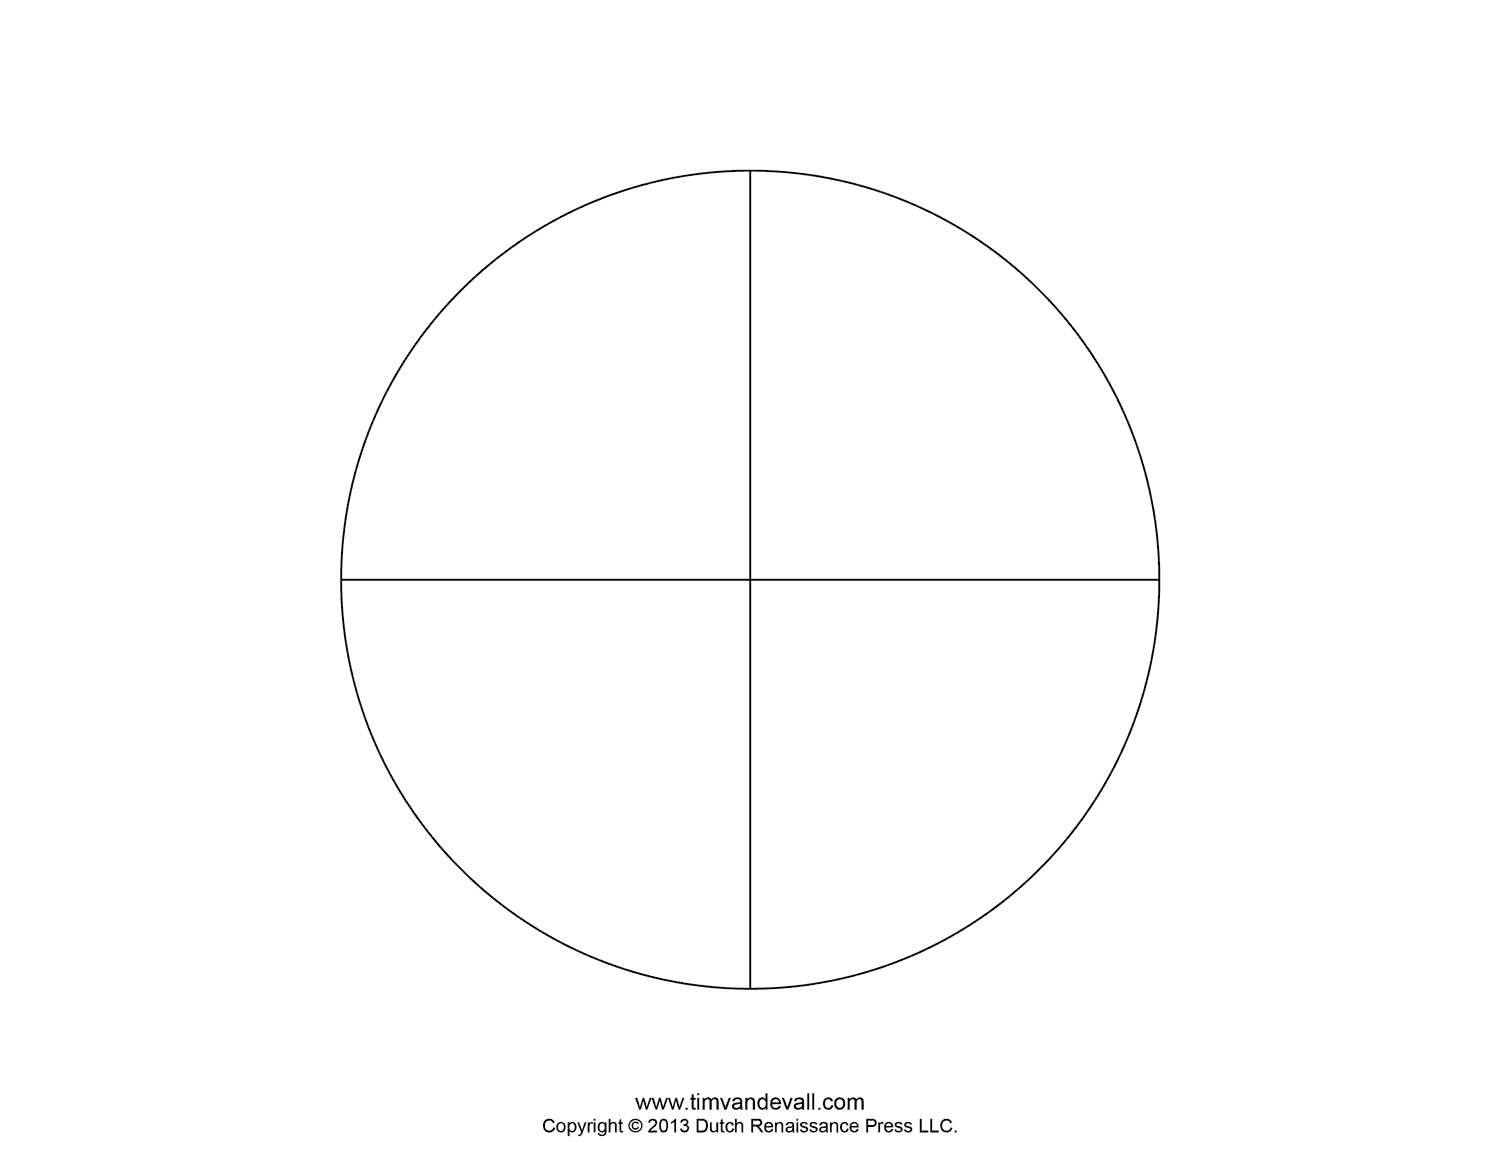 Worksheet Blank Graph Template Grass Fedjp Worksheet Study Site